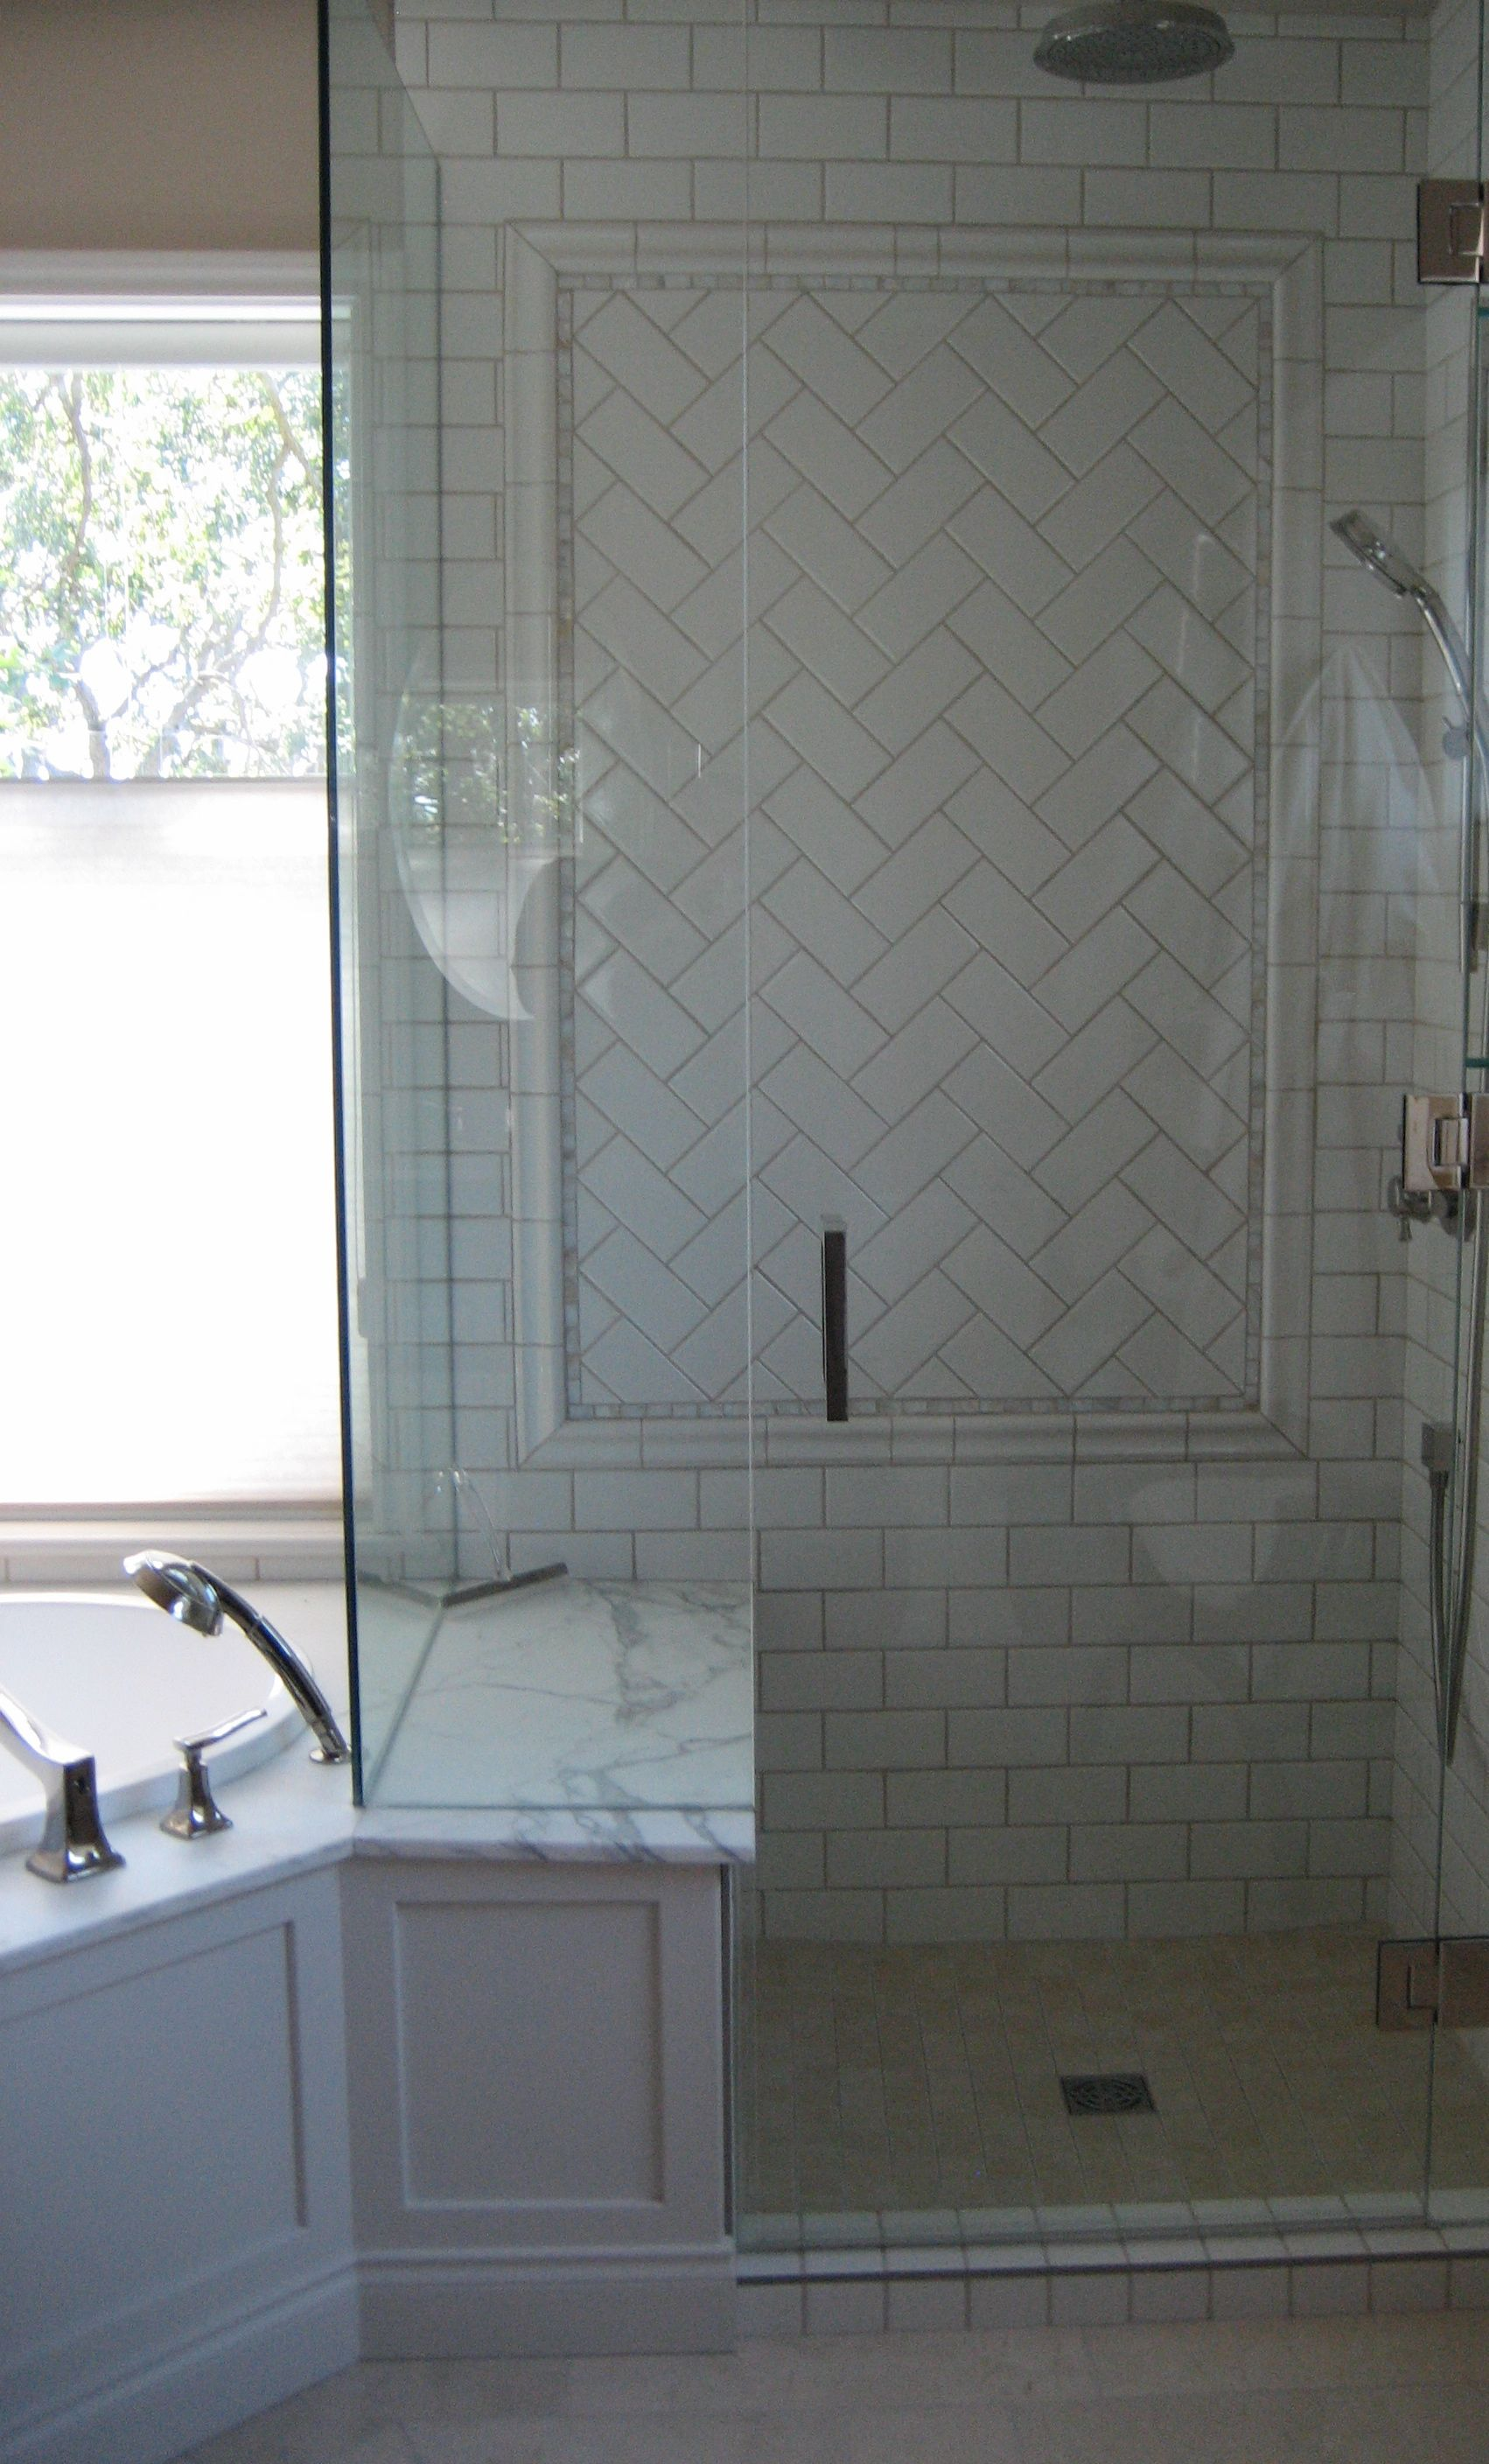 Bovard interiors bathrooms modern bathroom rubber ducky bathroom - Mother Of Pearl Details And Herringbone Inlay Bathroom